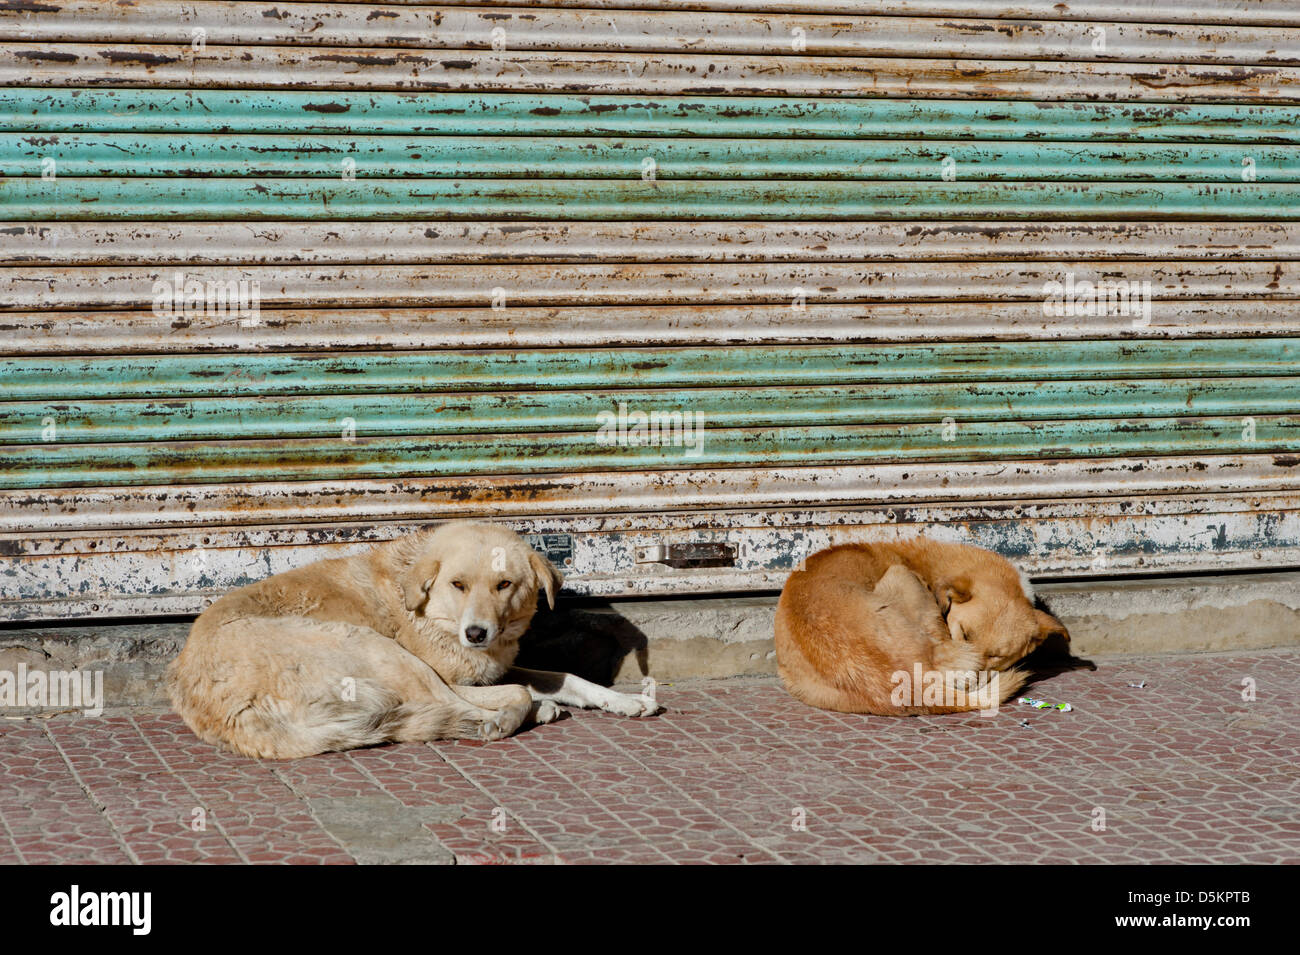 Cute, homeless, street dogs in the mountain town of Leh, Jammu and Kashmir. India. - Stock Image